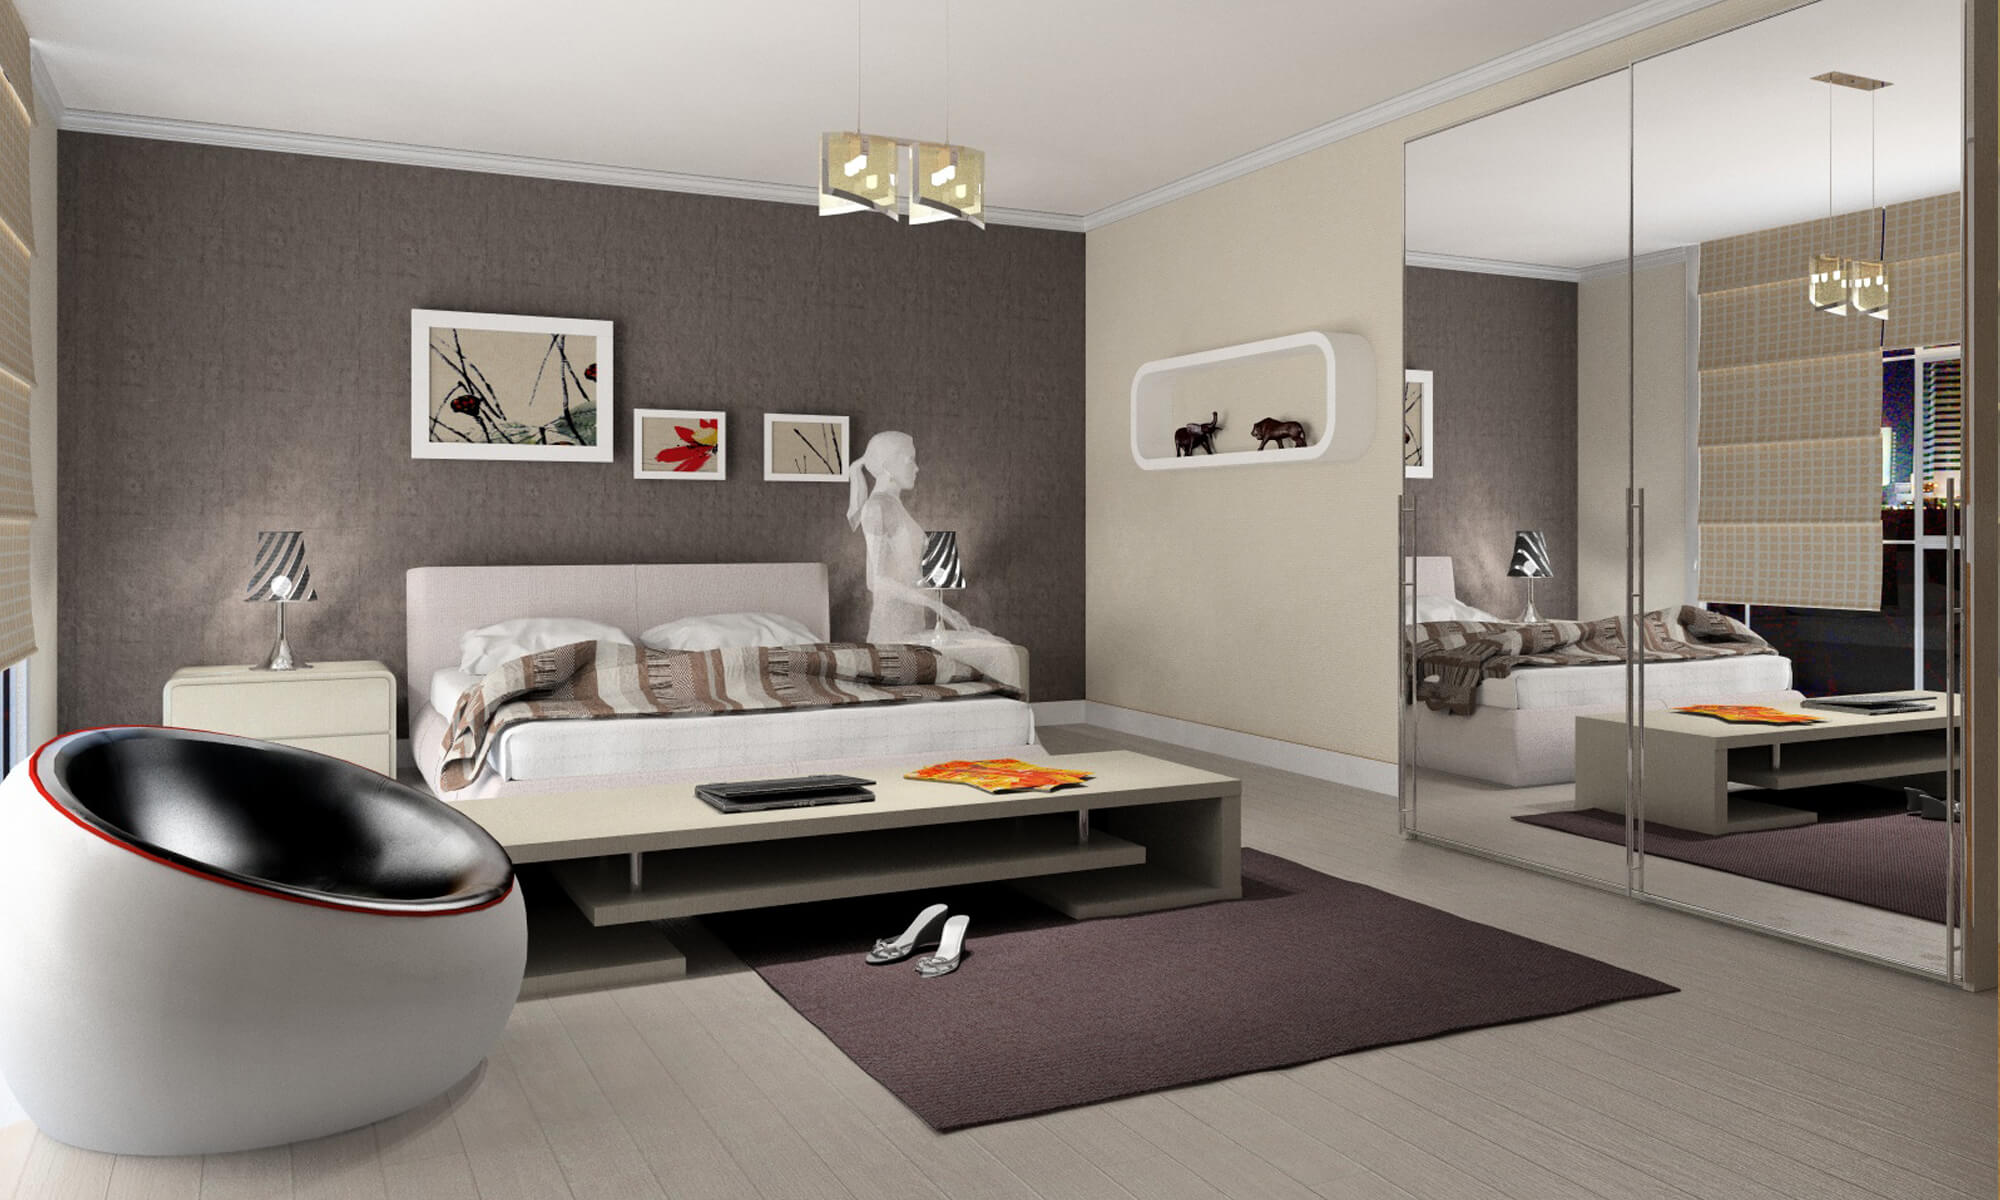 Projets 3d Chambres Intericad